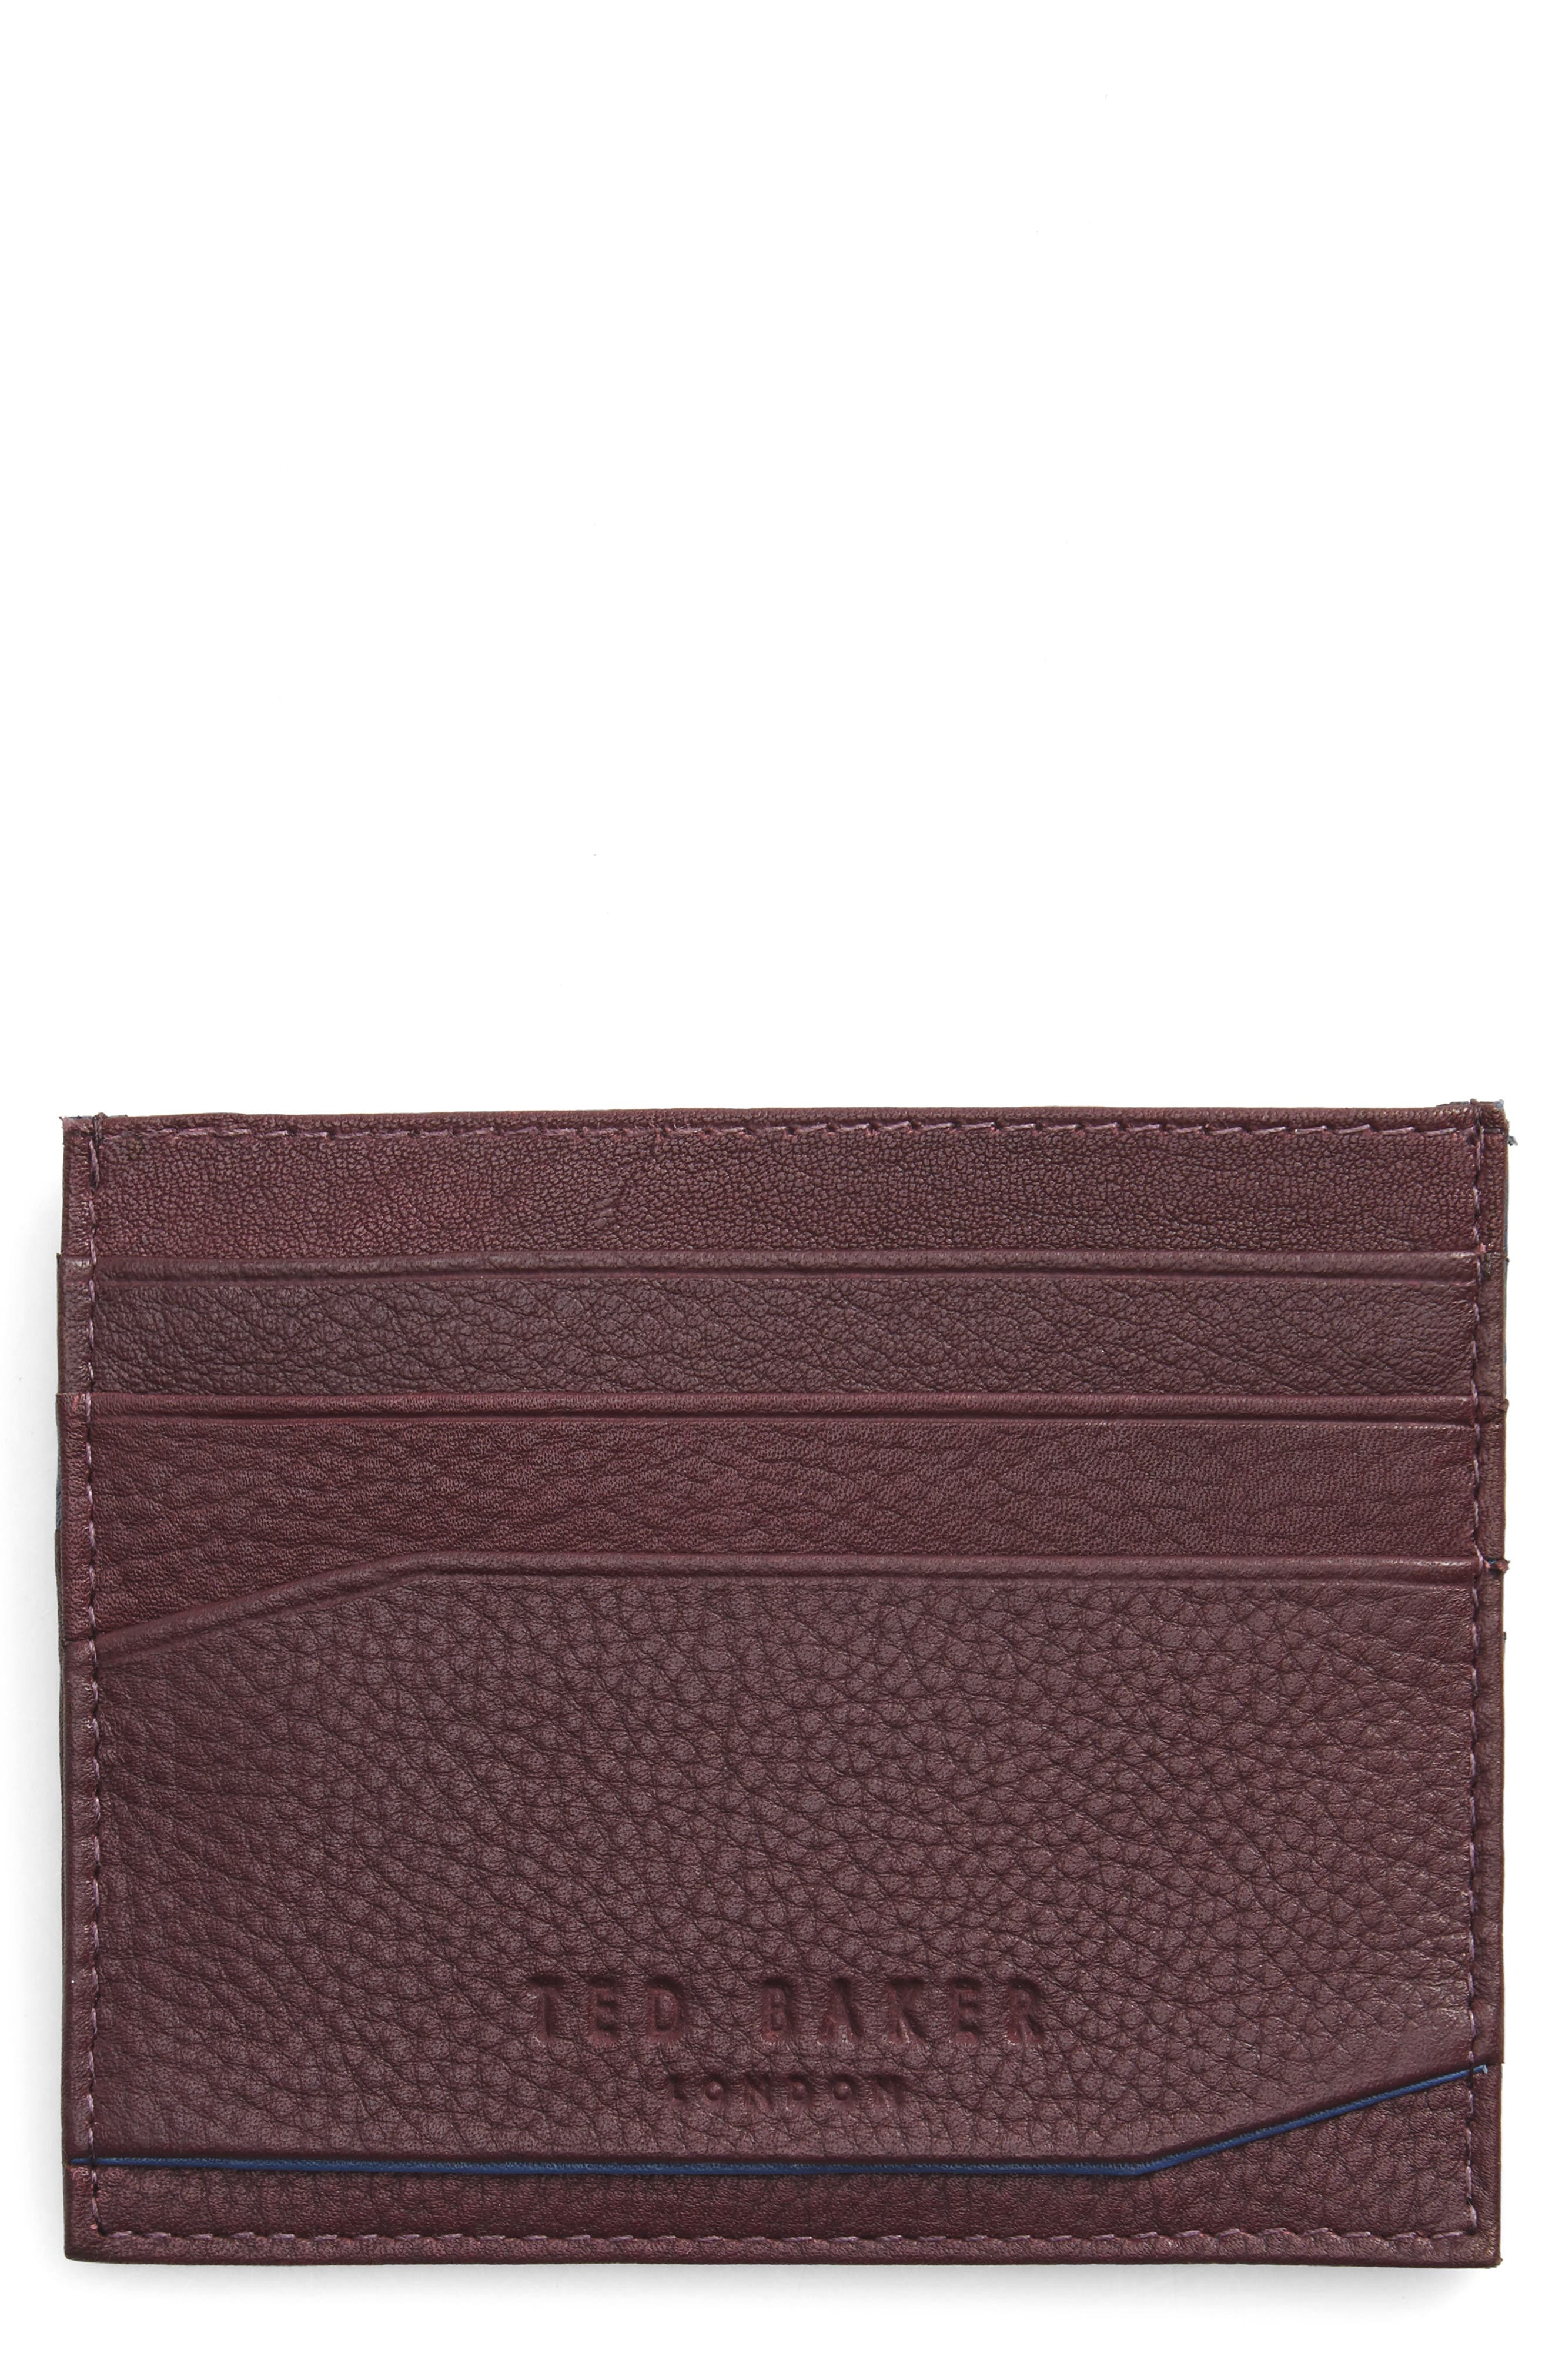 Ted Baker London Binxx Leather Card Case